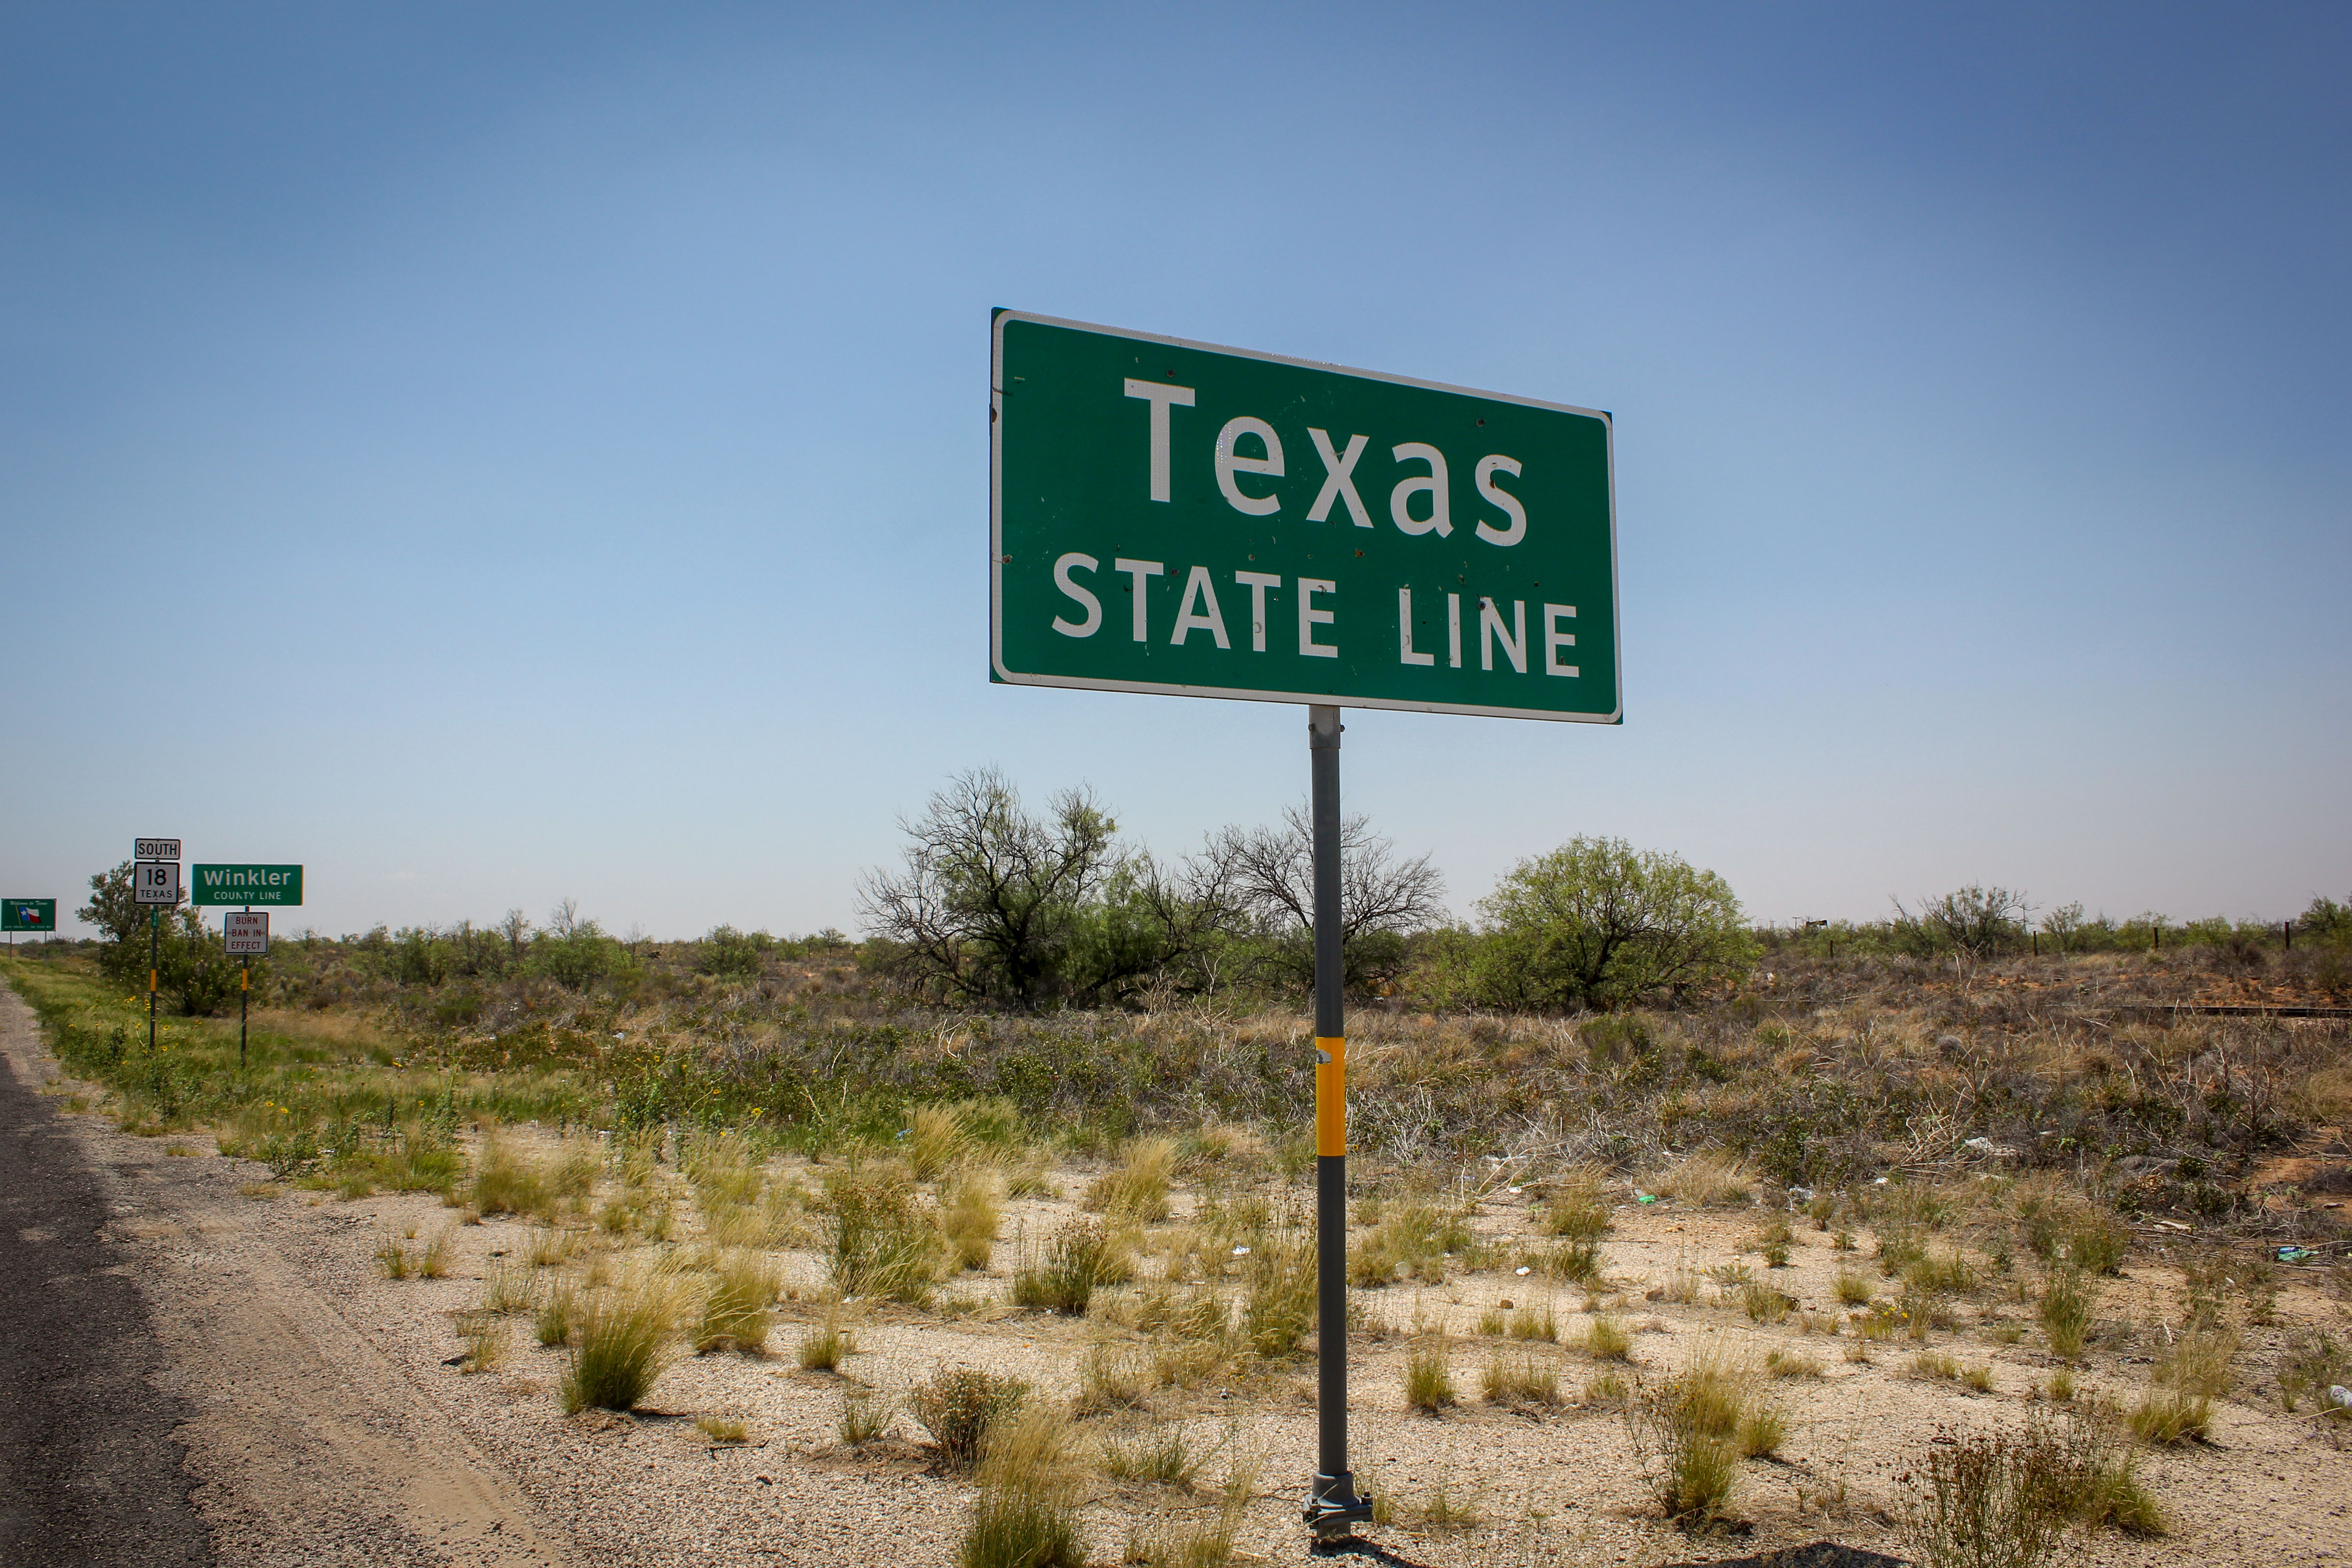 Photo: Denver Texas Climate | Texas-New Mexico State Line Sign - CC/Flickr